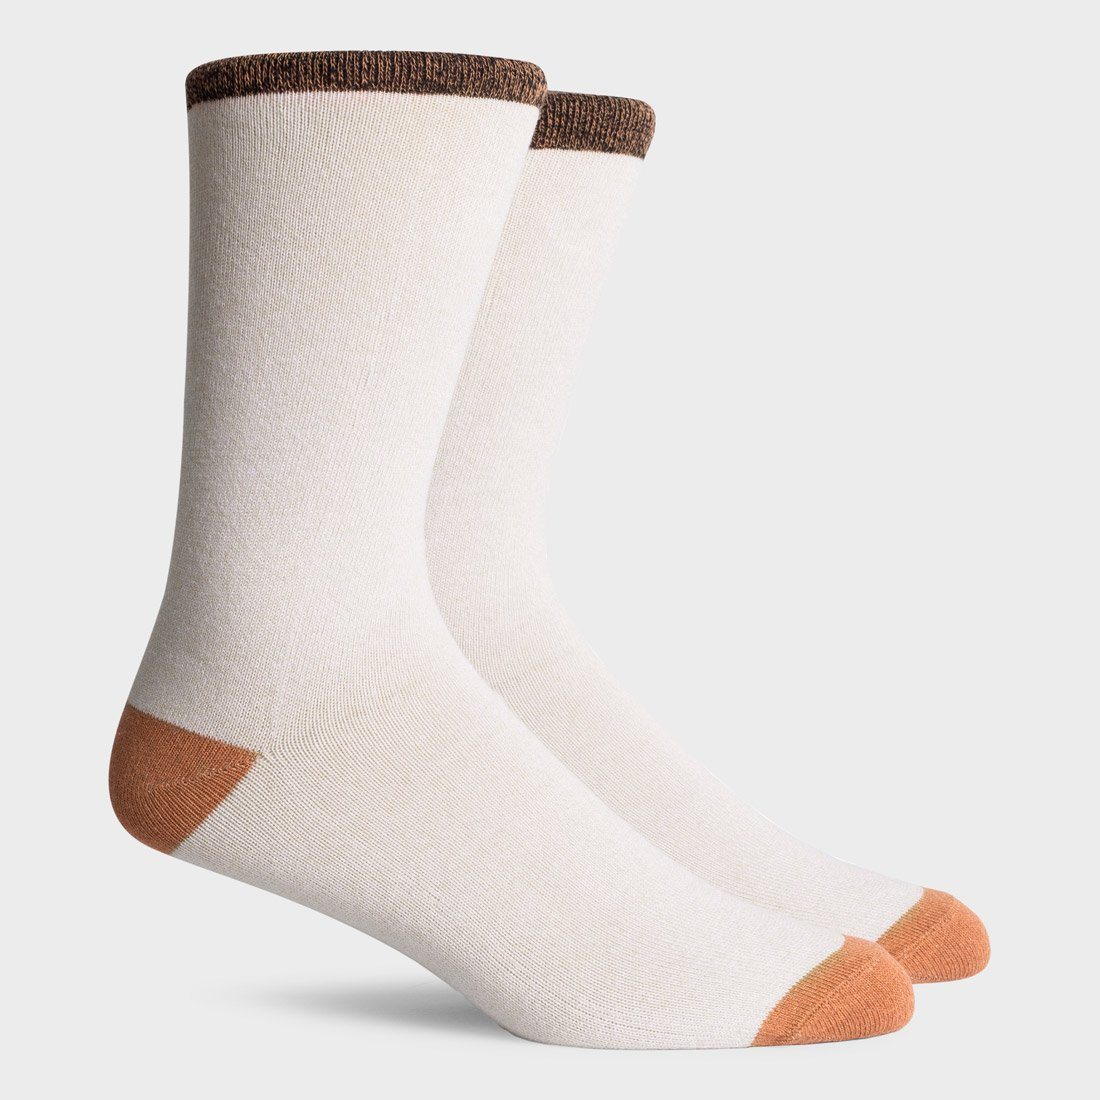 Richer Poorer Tanner Crew Sock White Tan